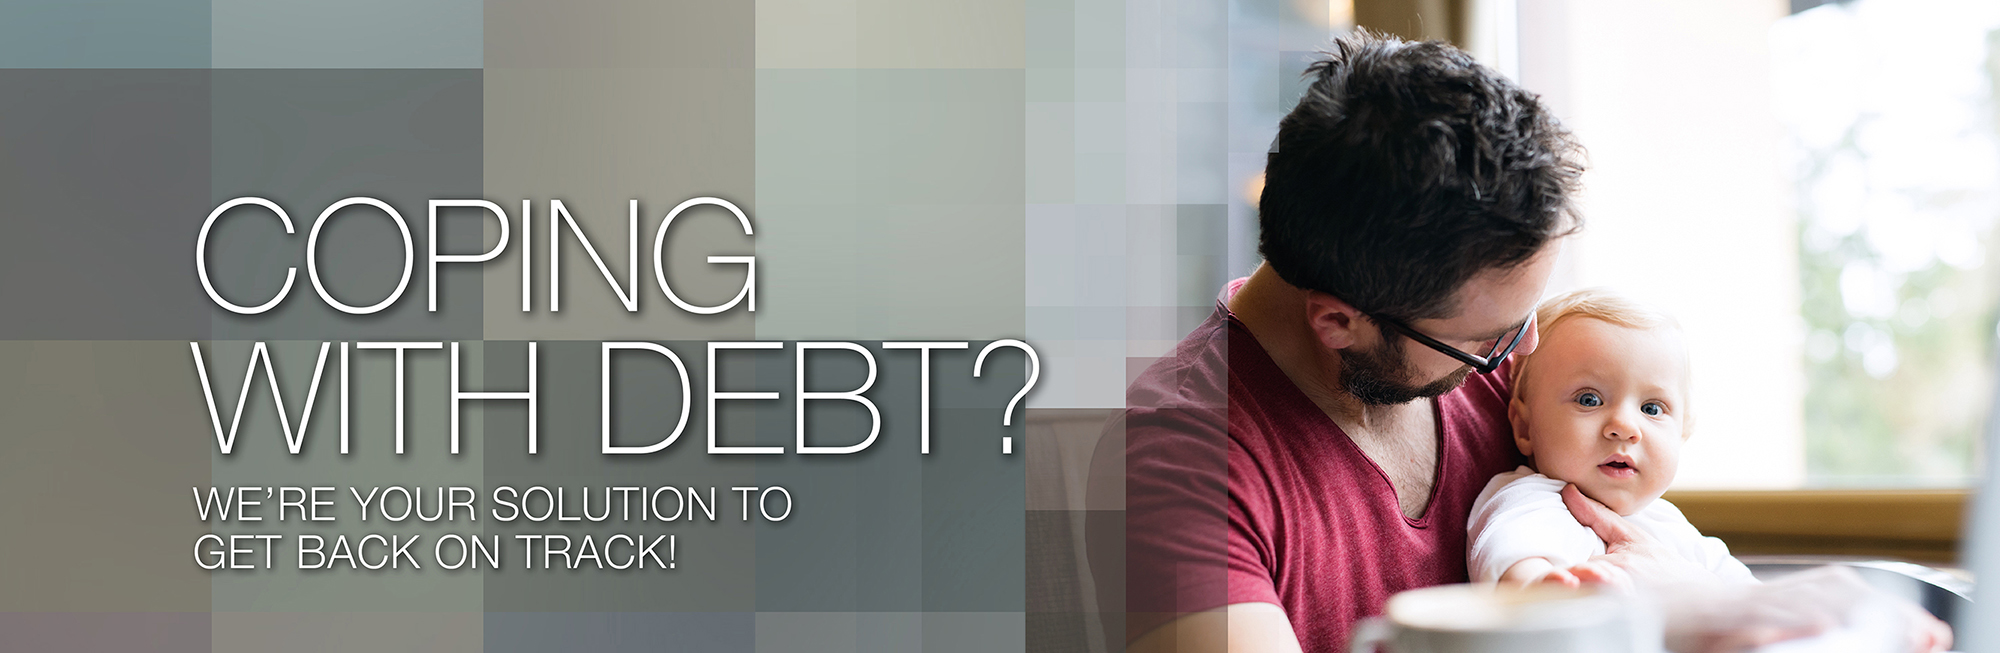 Coping with Debt? We are your solution to get back on track.